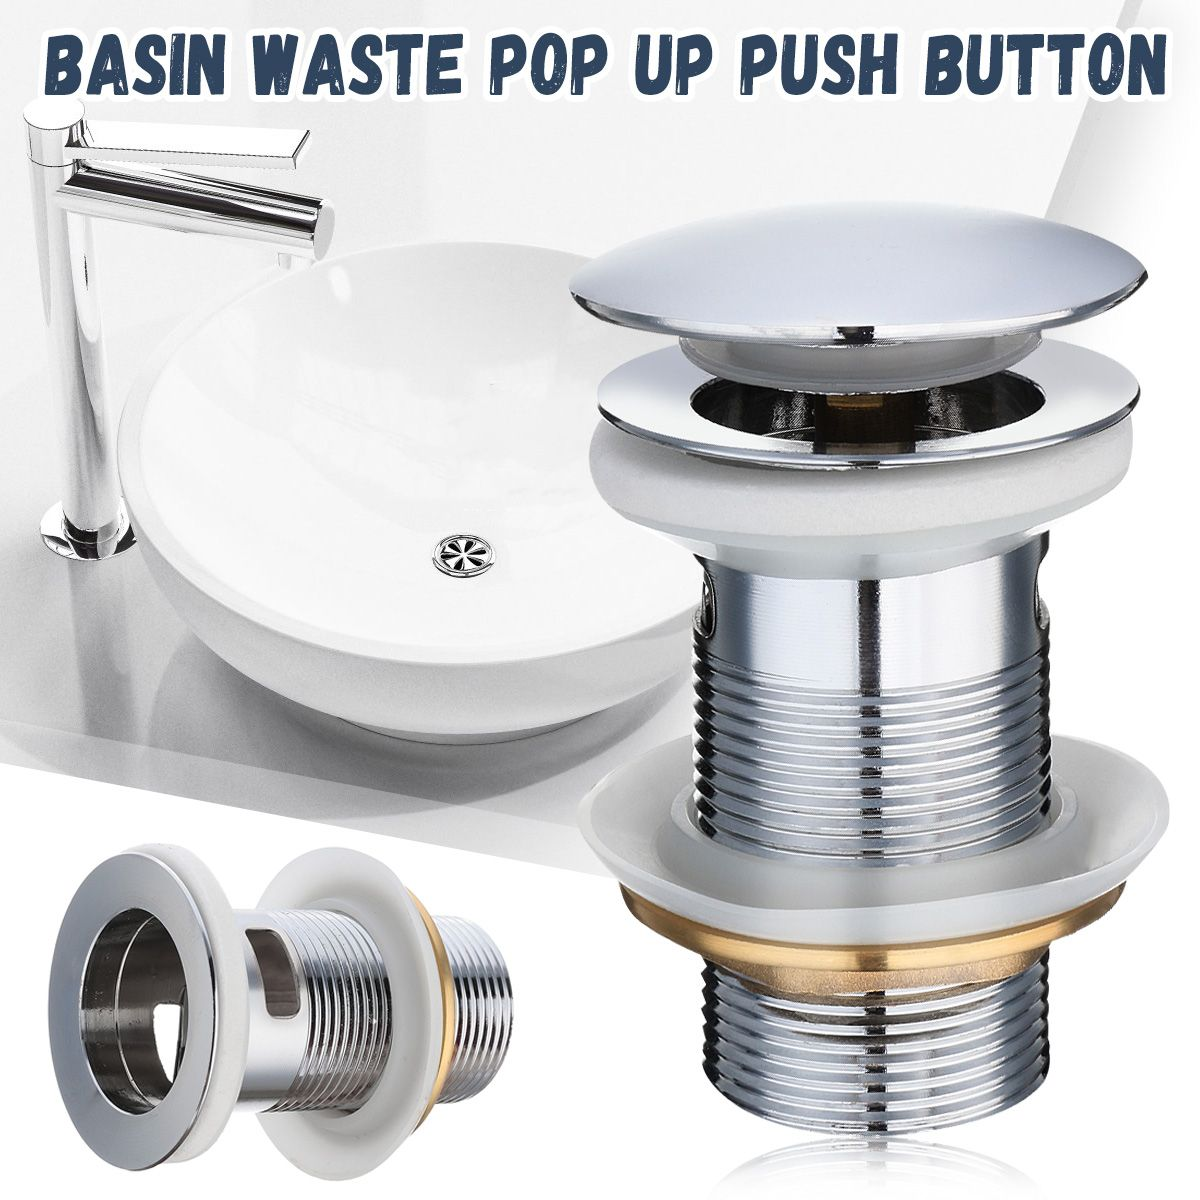 Zinc Alloy Click Slotted Basin Sink Tap Drain Bath Overflow Hole Push Button Pops Up Clack Waste Plug